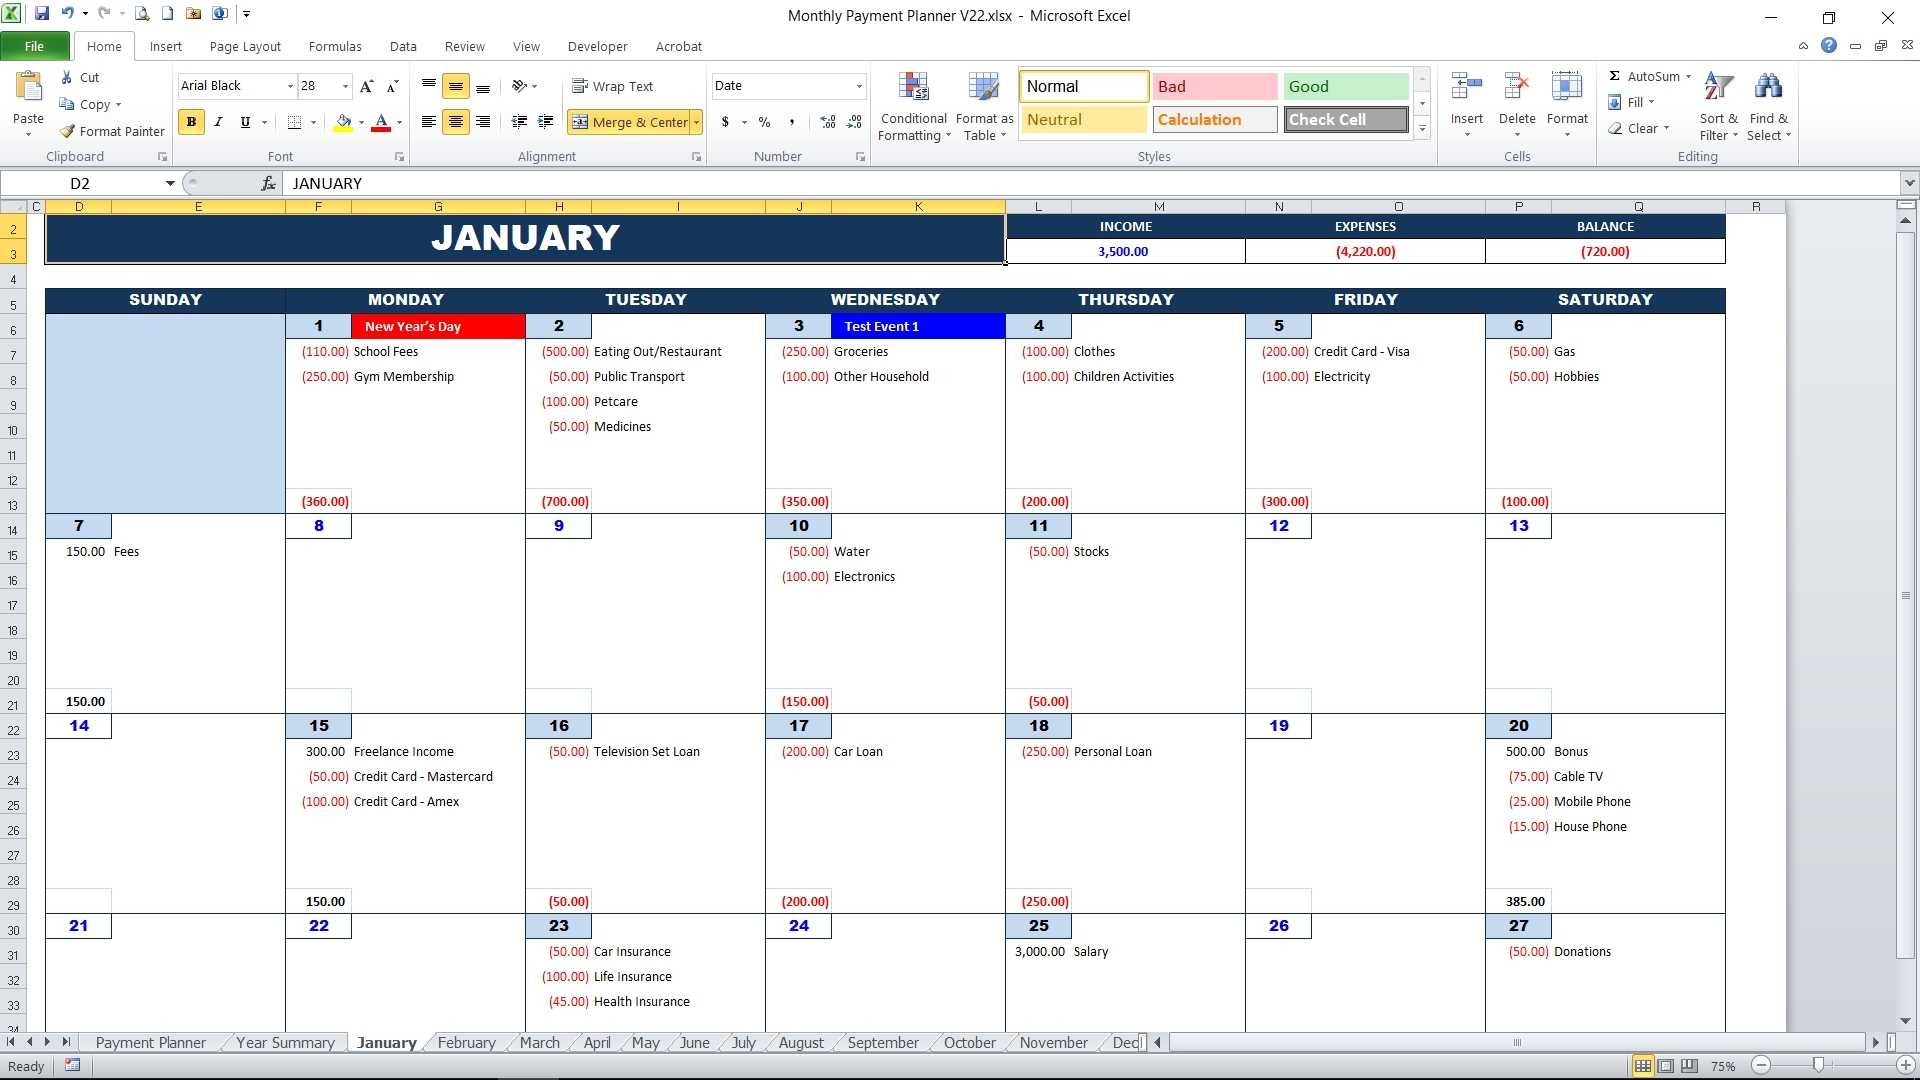 Monthly Payment Planner Calendar View2 With Monthly Bill